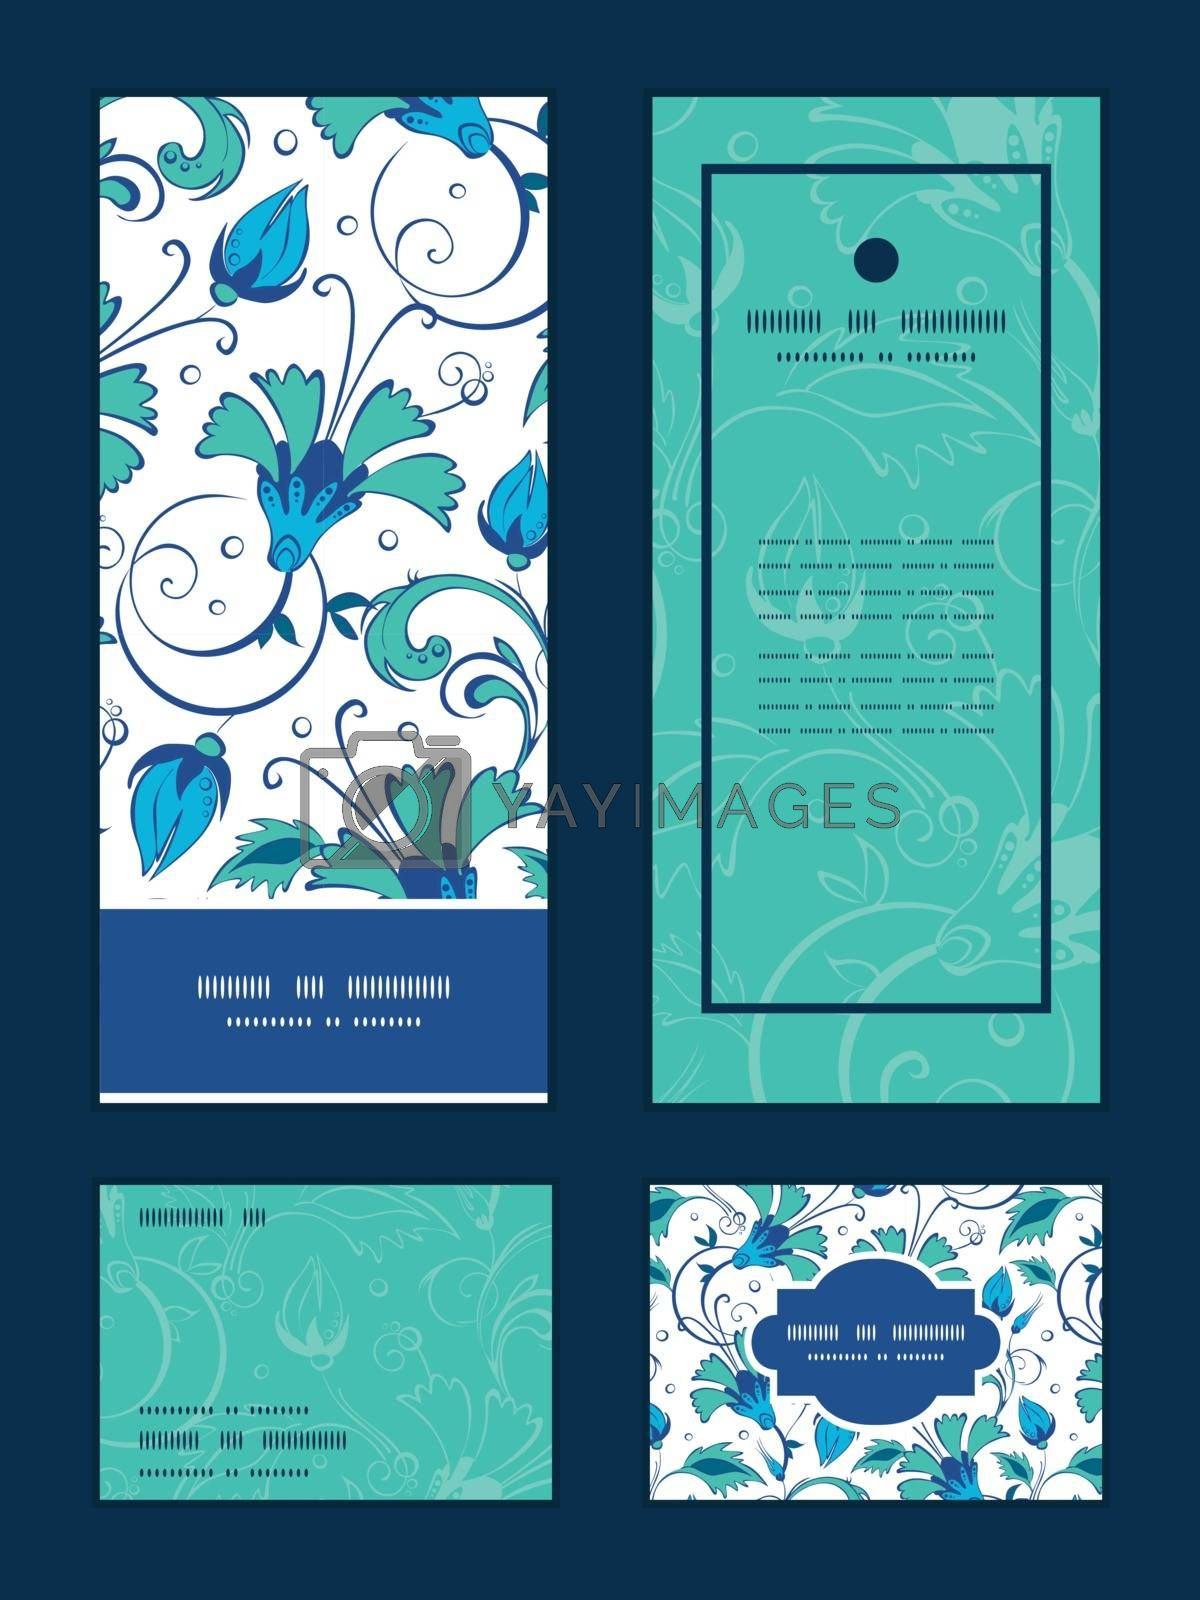 Vector blue green swirly flowers vertical frame pattern invitation greeting, RSVP and thank you cards set graphic design